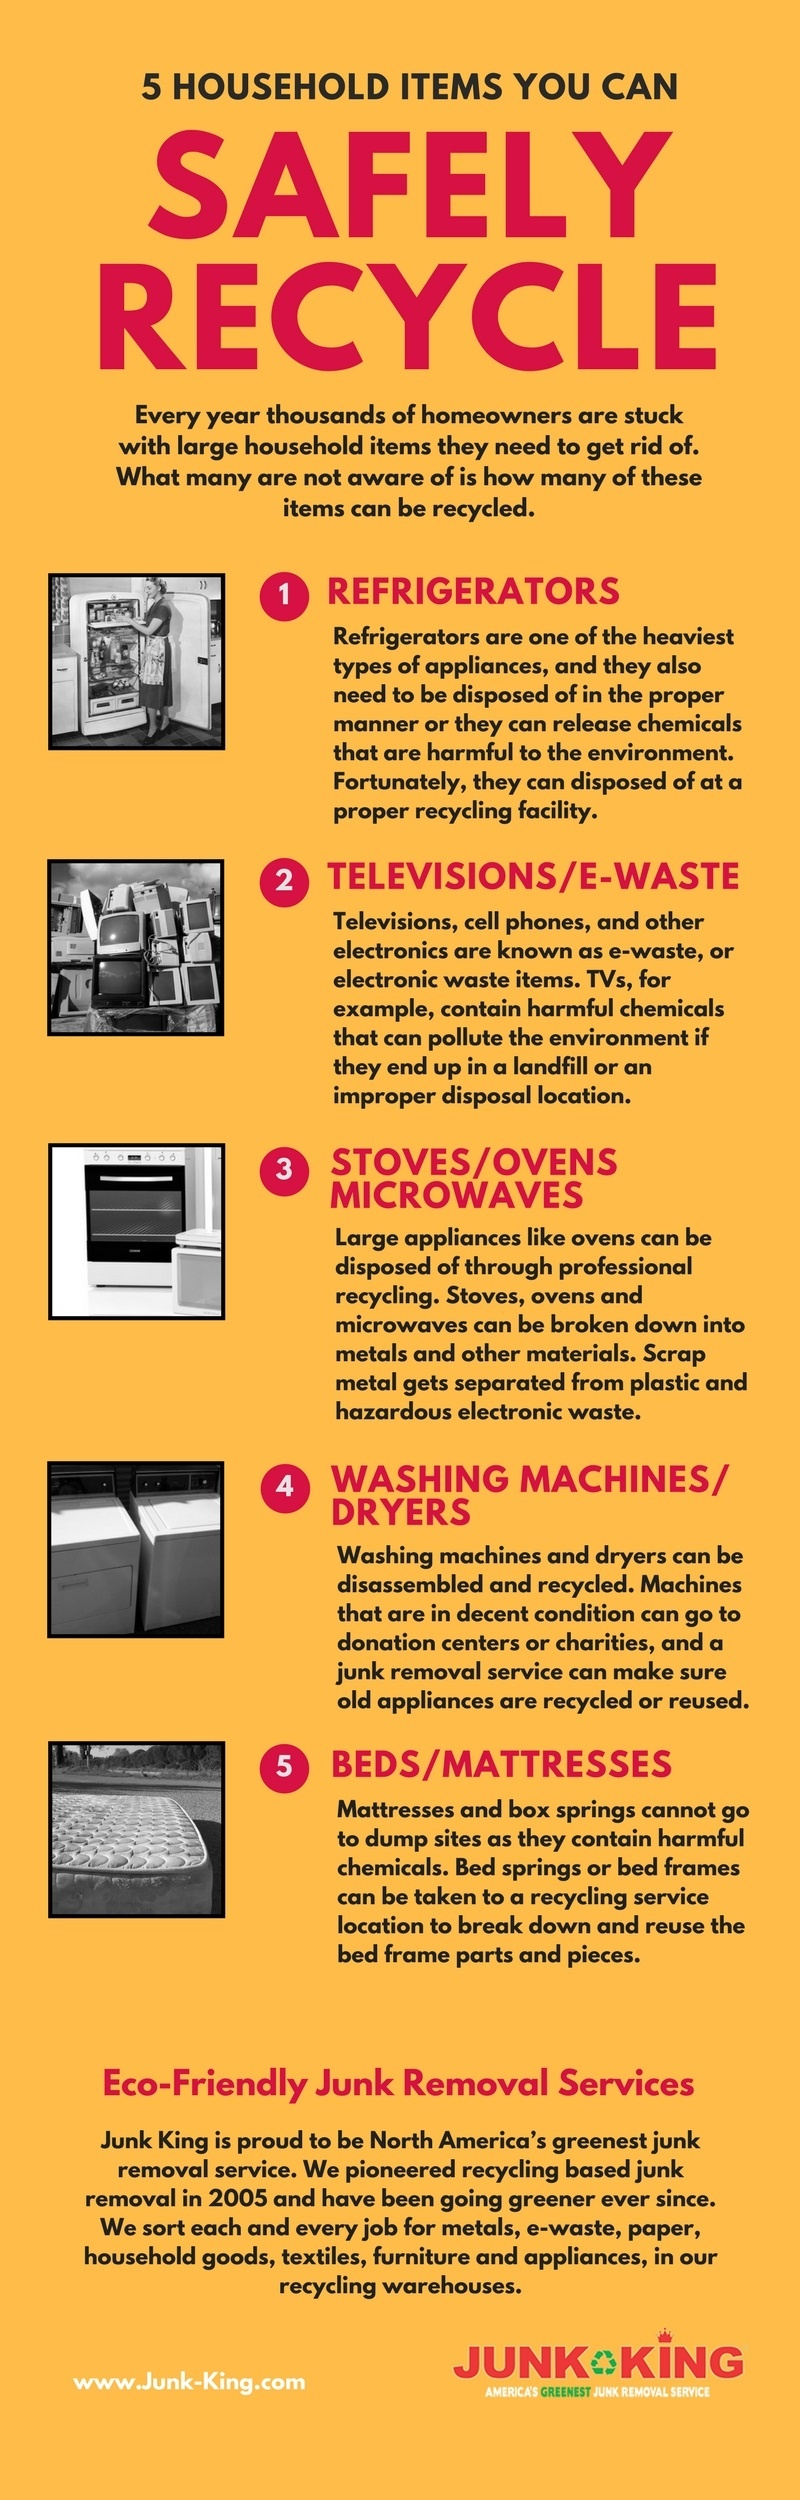 5 household items you can recycle